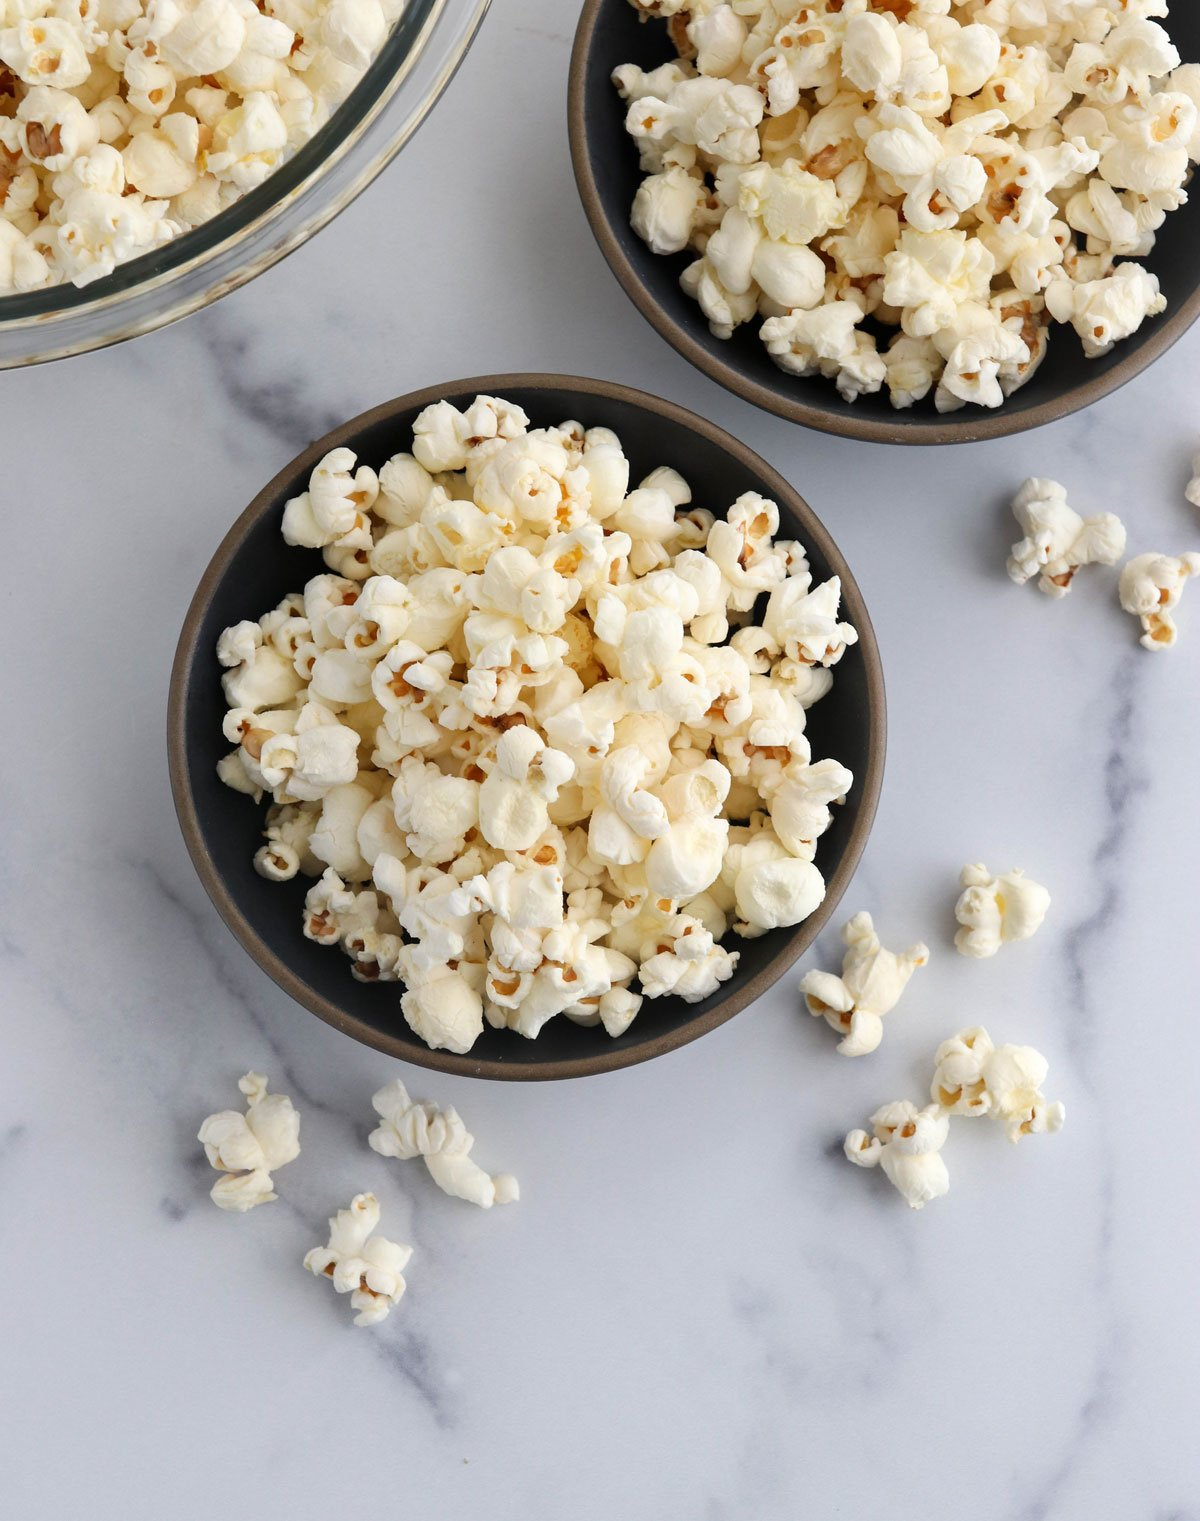 popcorn in two black bowls